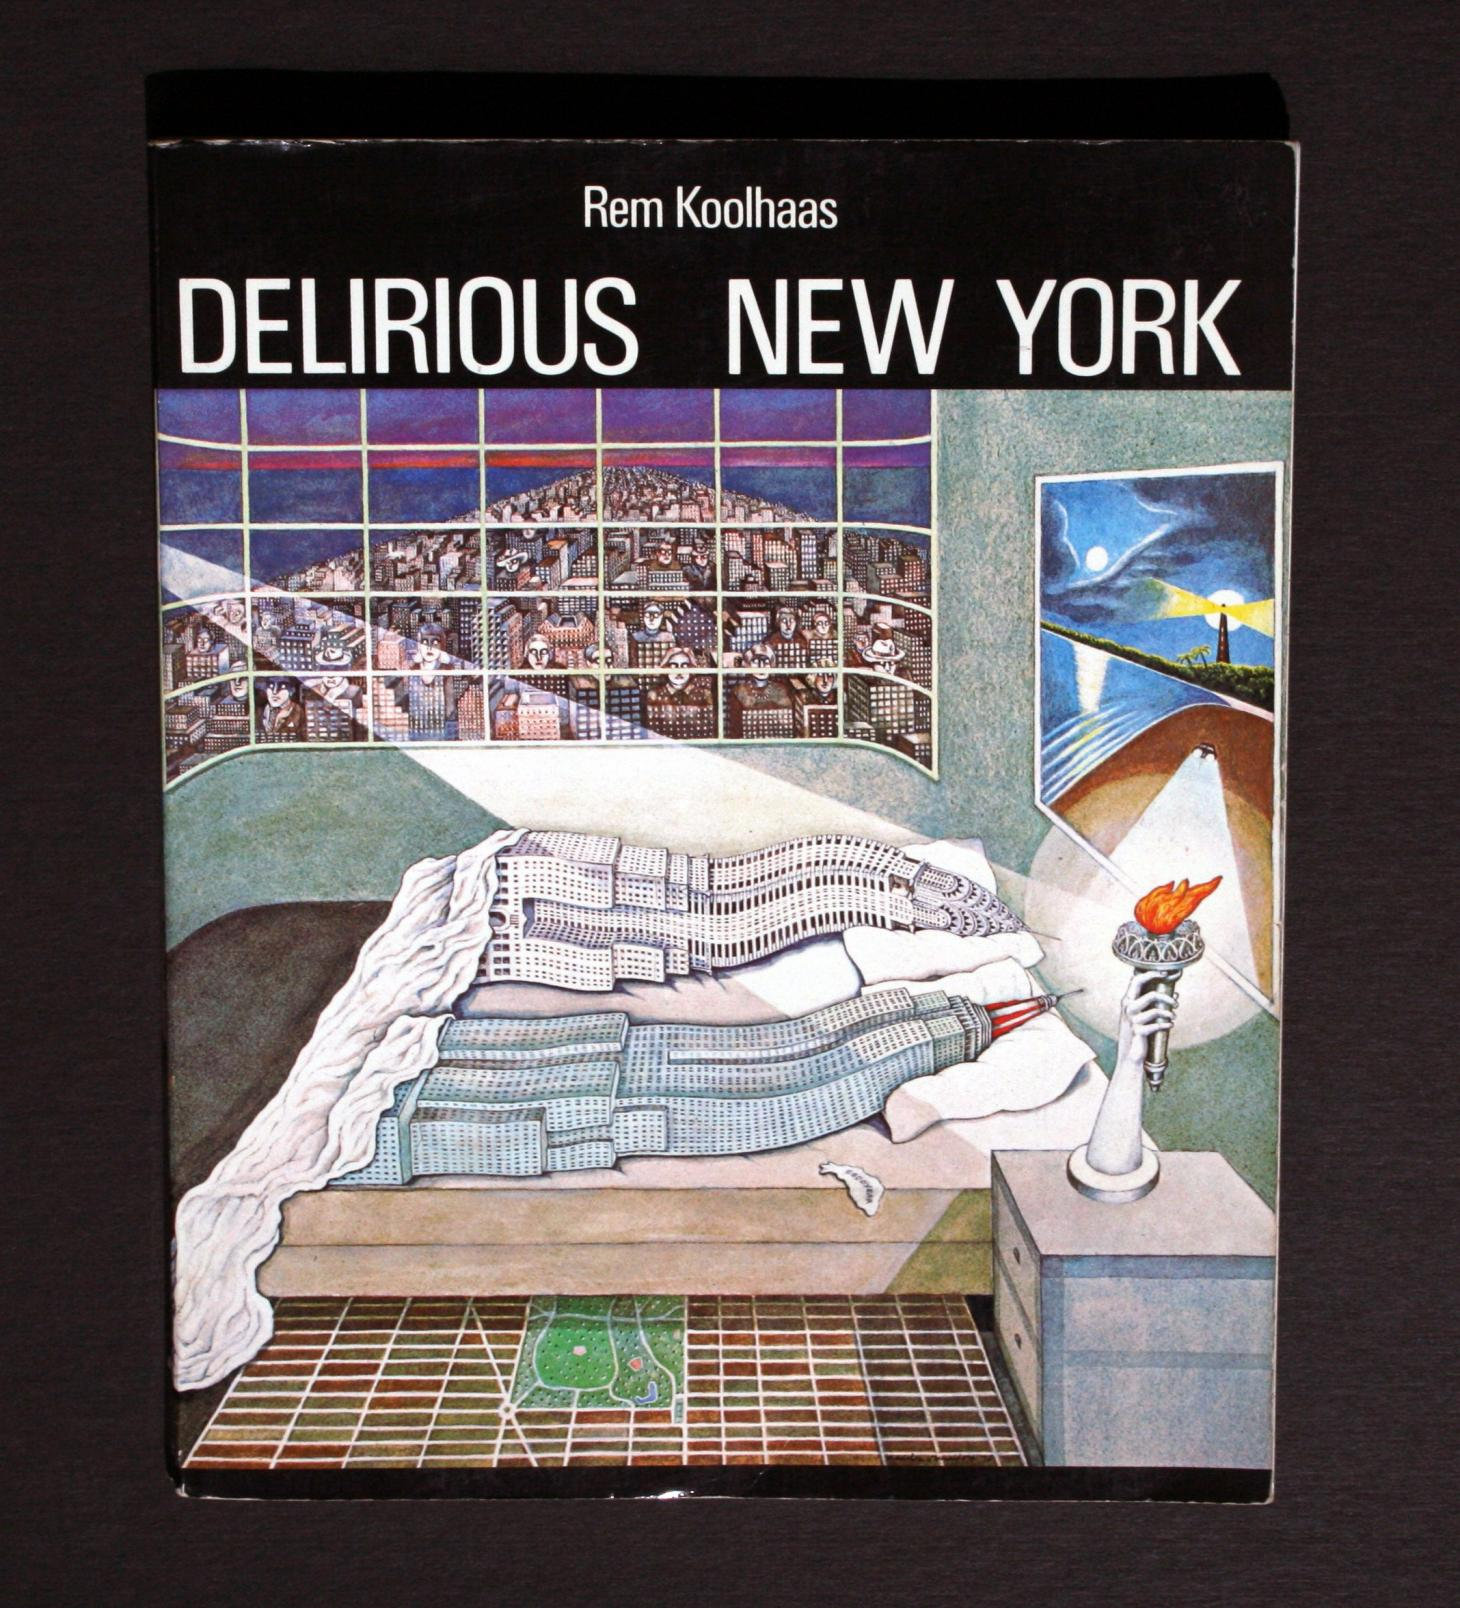 Delirious new york magazine cover by Rem Koolhaas